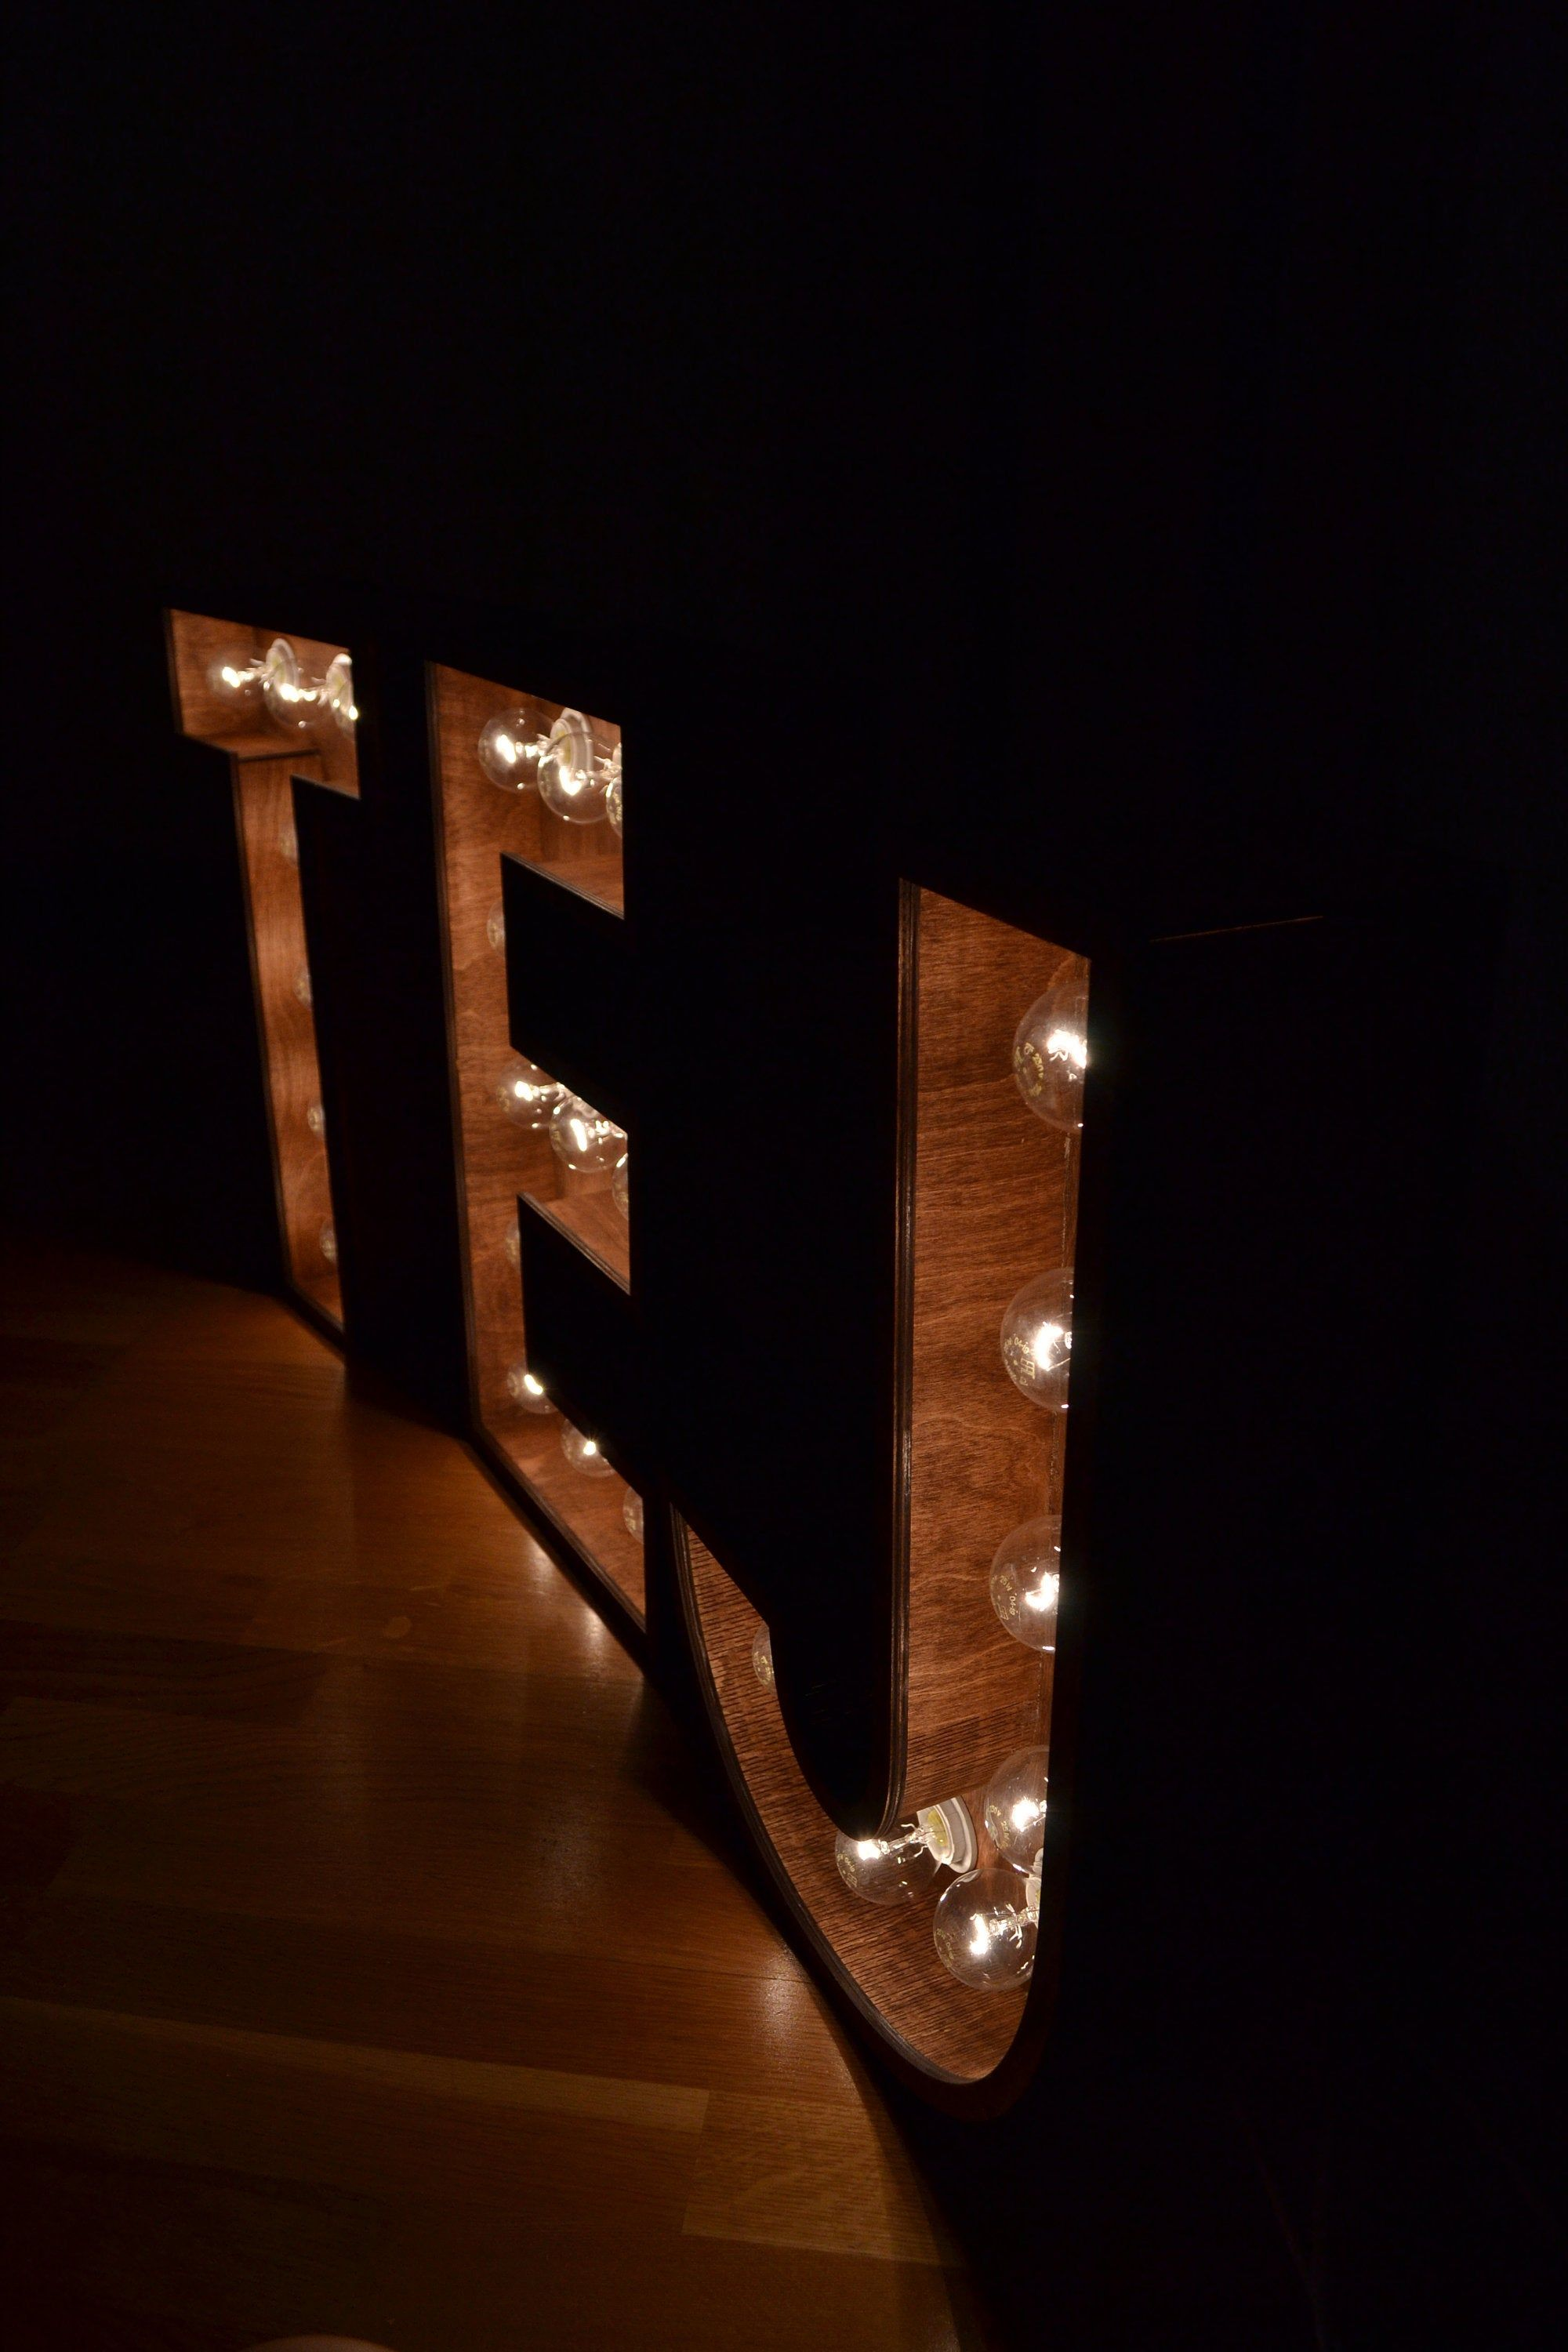 20 Inches Lighted Letters Large Letter Light Wedding Marquee Lights Light Up Names Light Up Letter Marquee Sign Light Letter